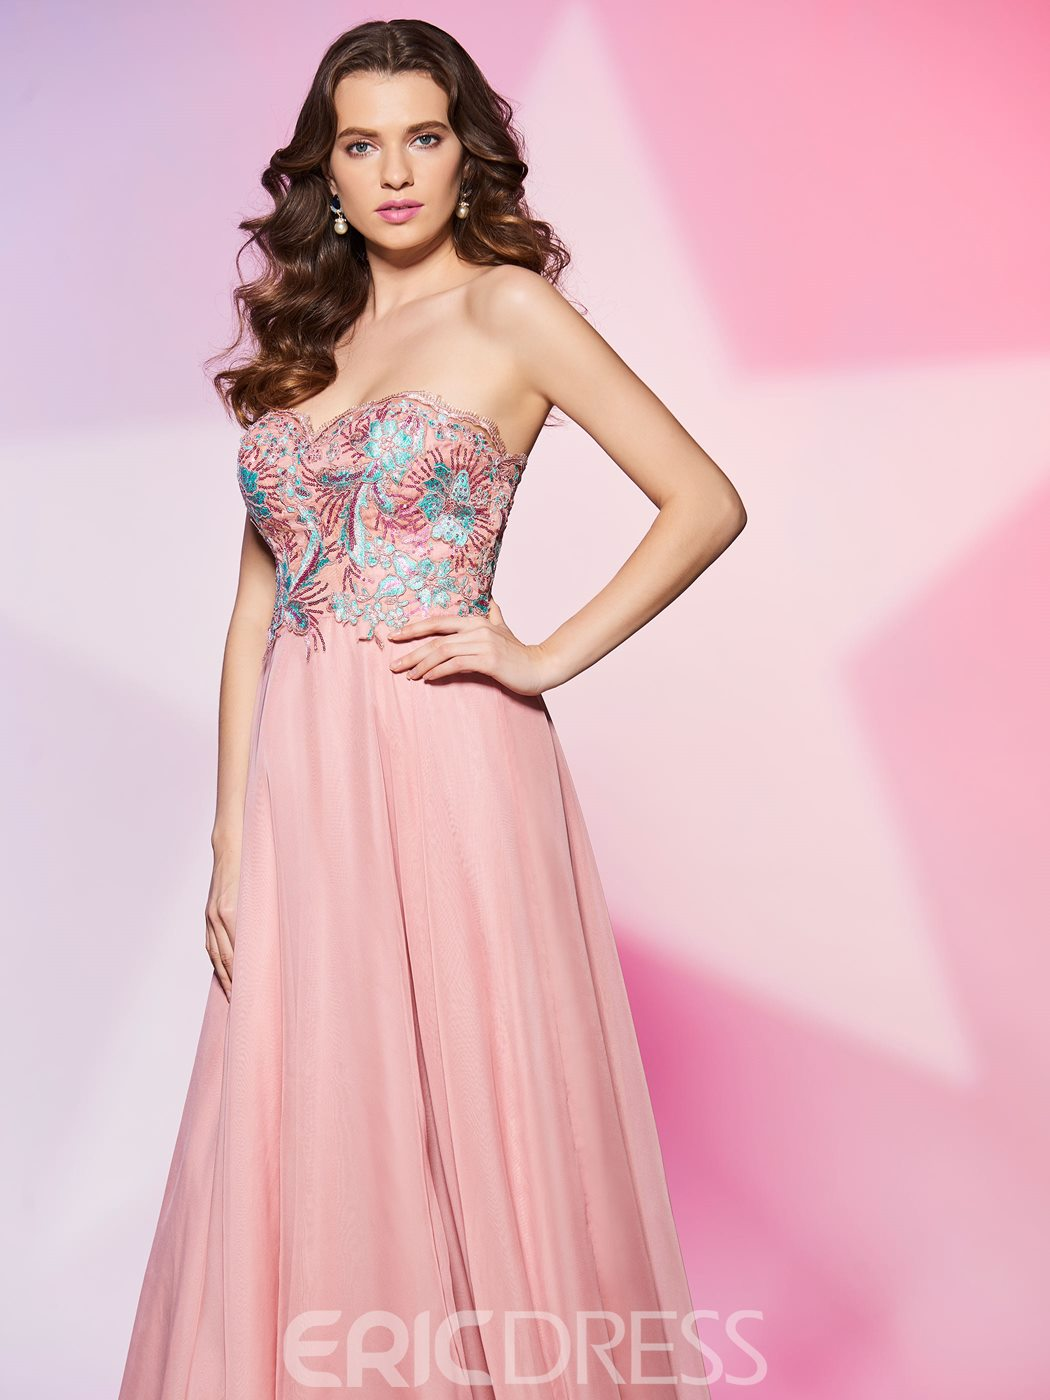 Ericdress Fresh A Line Sweetheart Embroidery Applique Zipper-Up Prom Dress